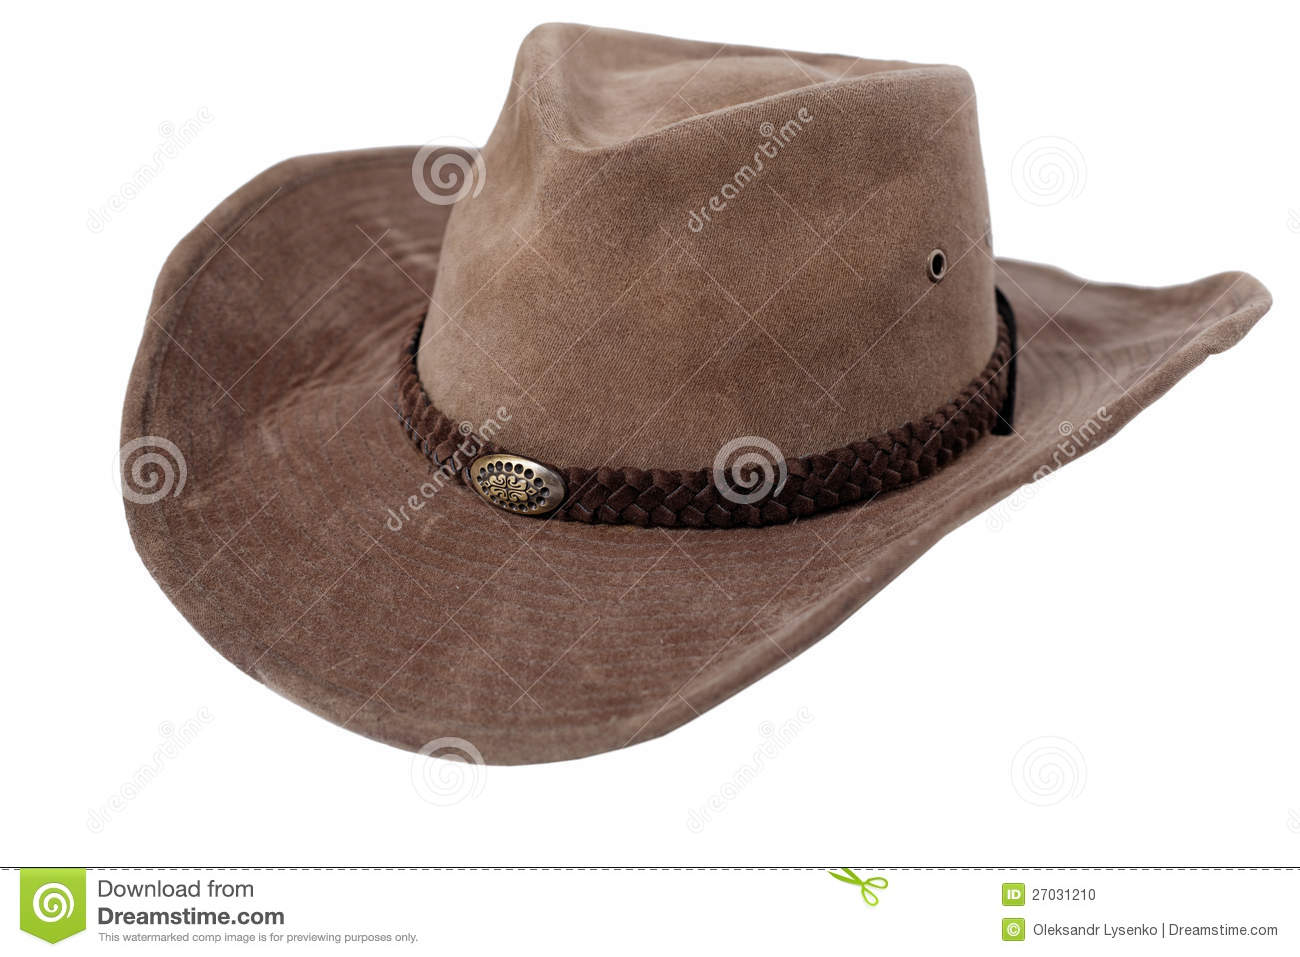 2dce947e88725 Leather Cowboy Hat Isolated Stock Photo - Image of head